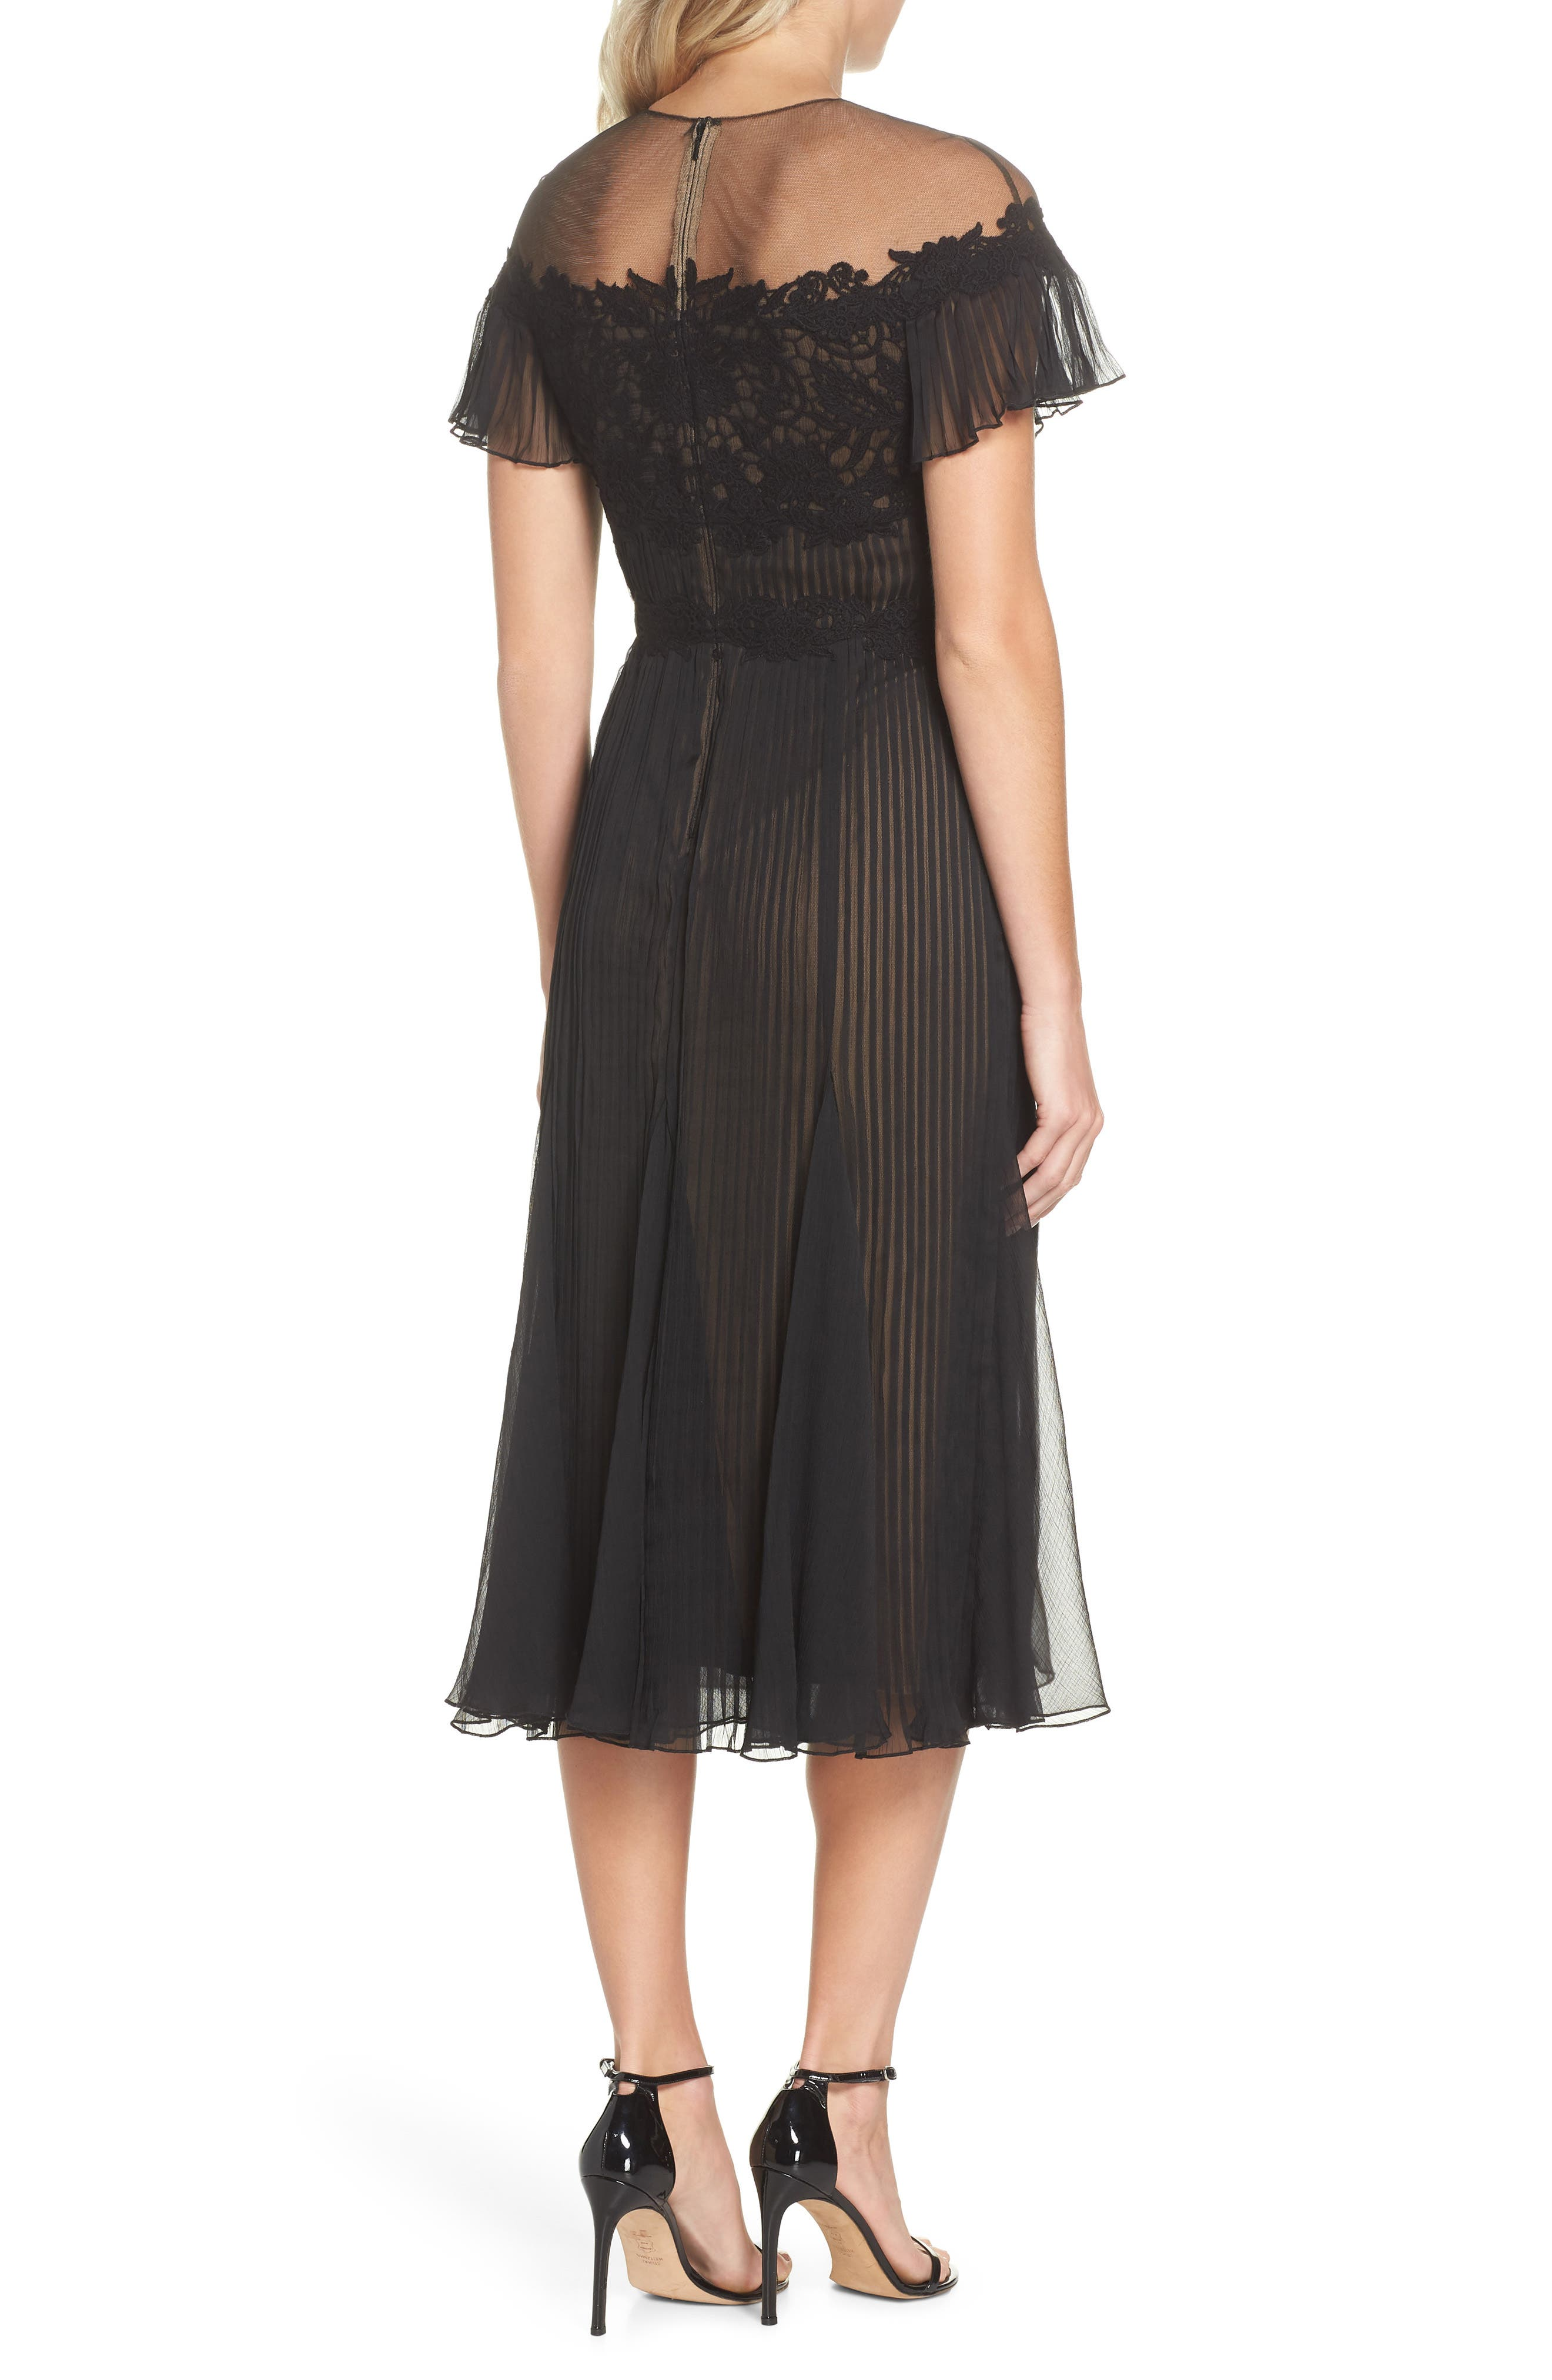 TADASHI SHOJI,                             Lace & Chiffon A-Line Dress,                             Alternate thumbnail 2, color,                             BLACK/ NUDE